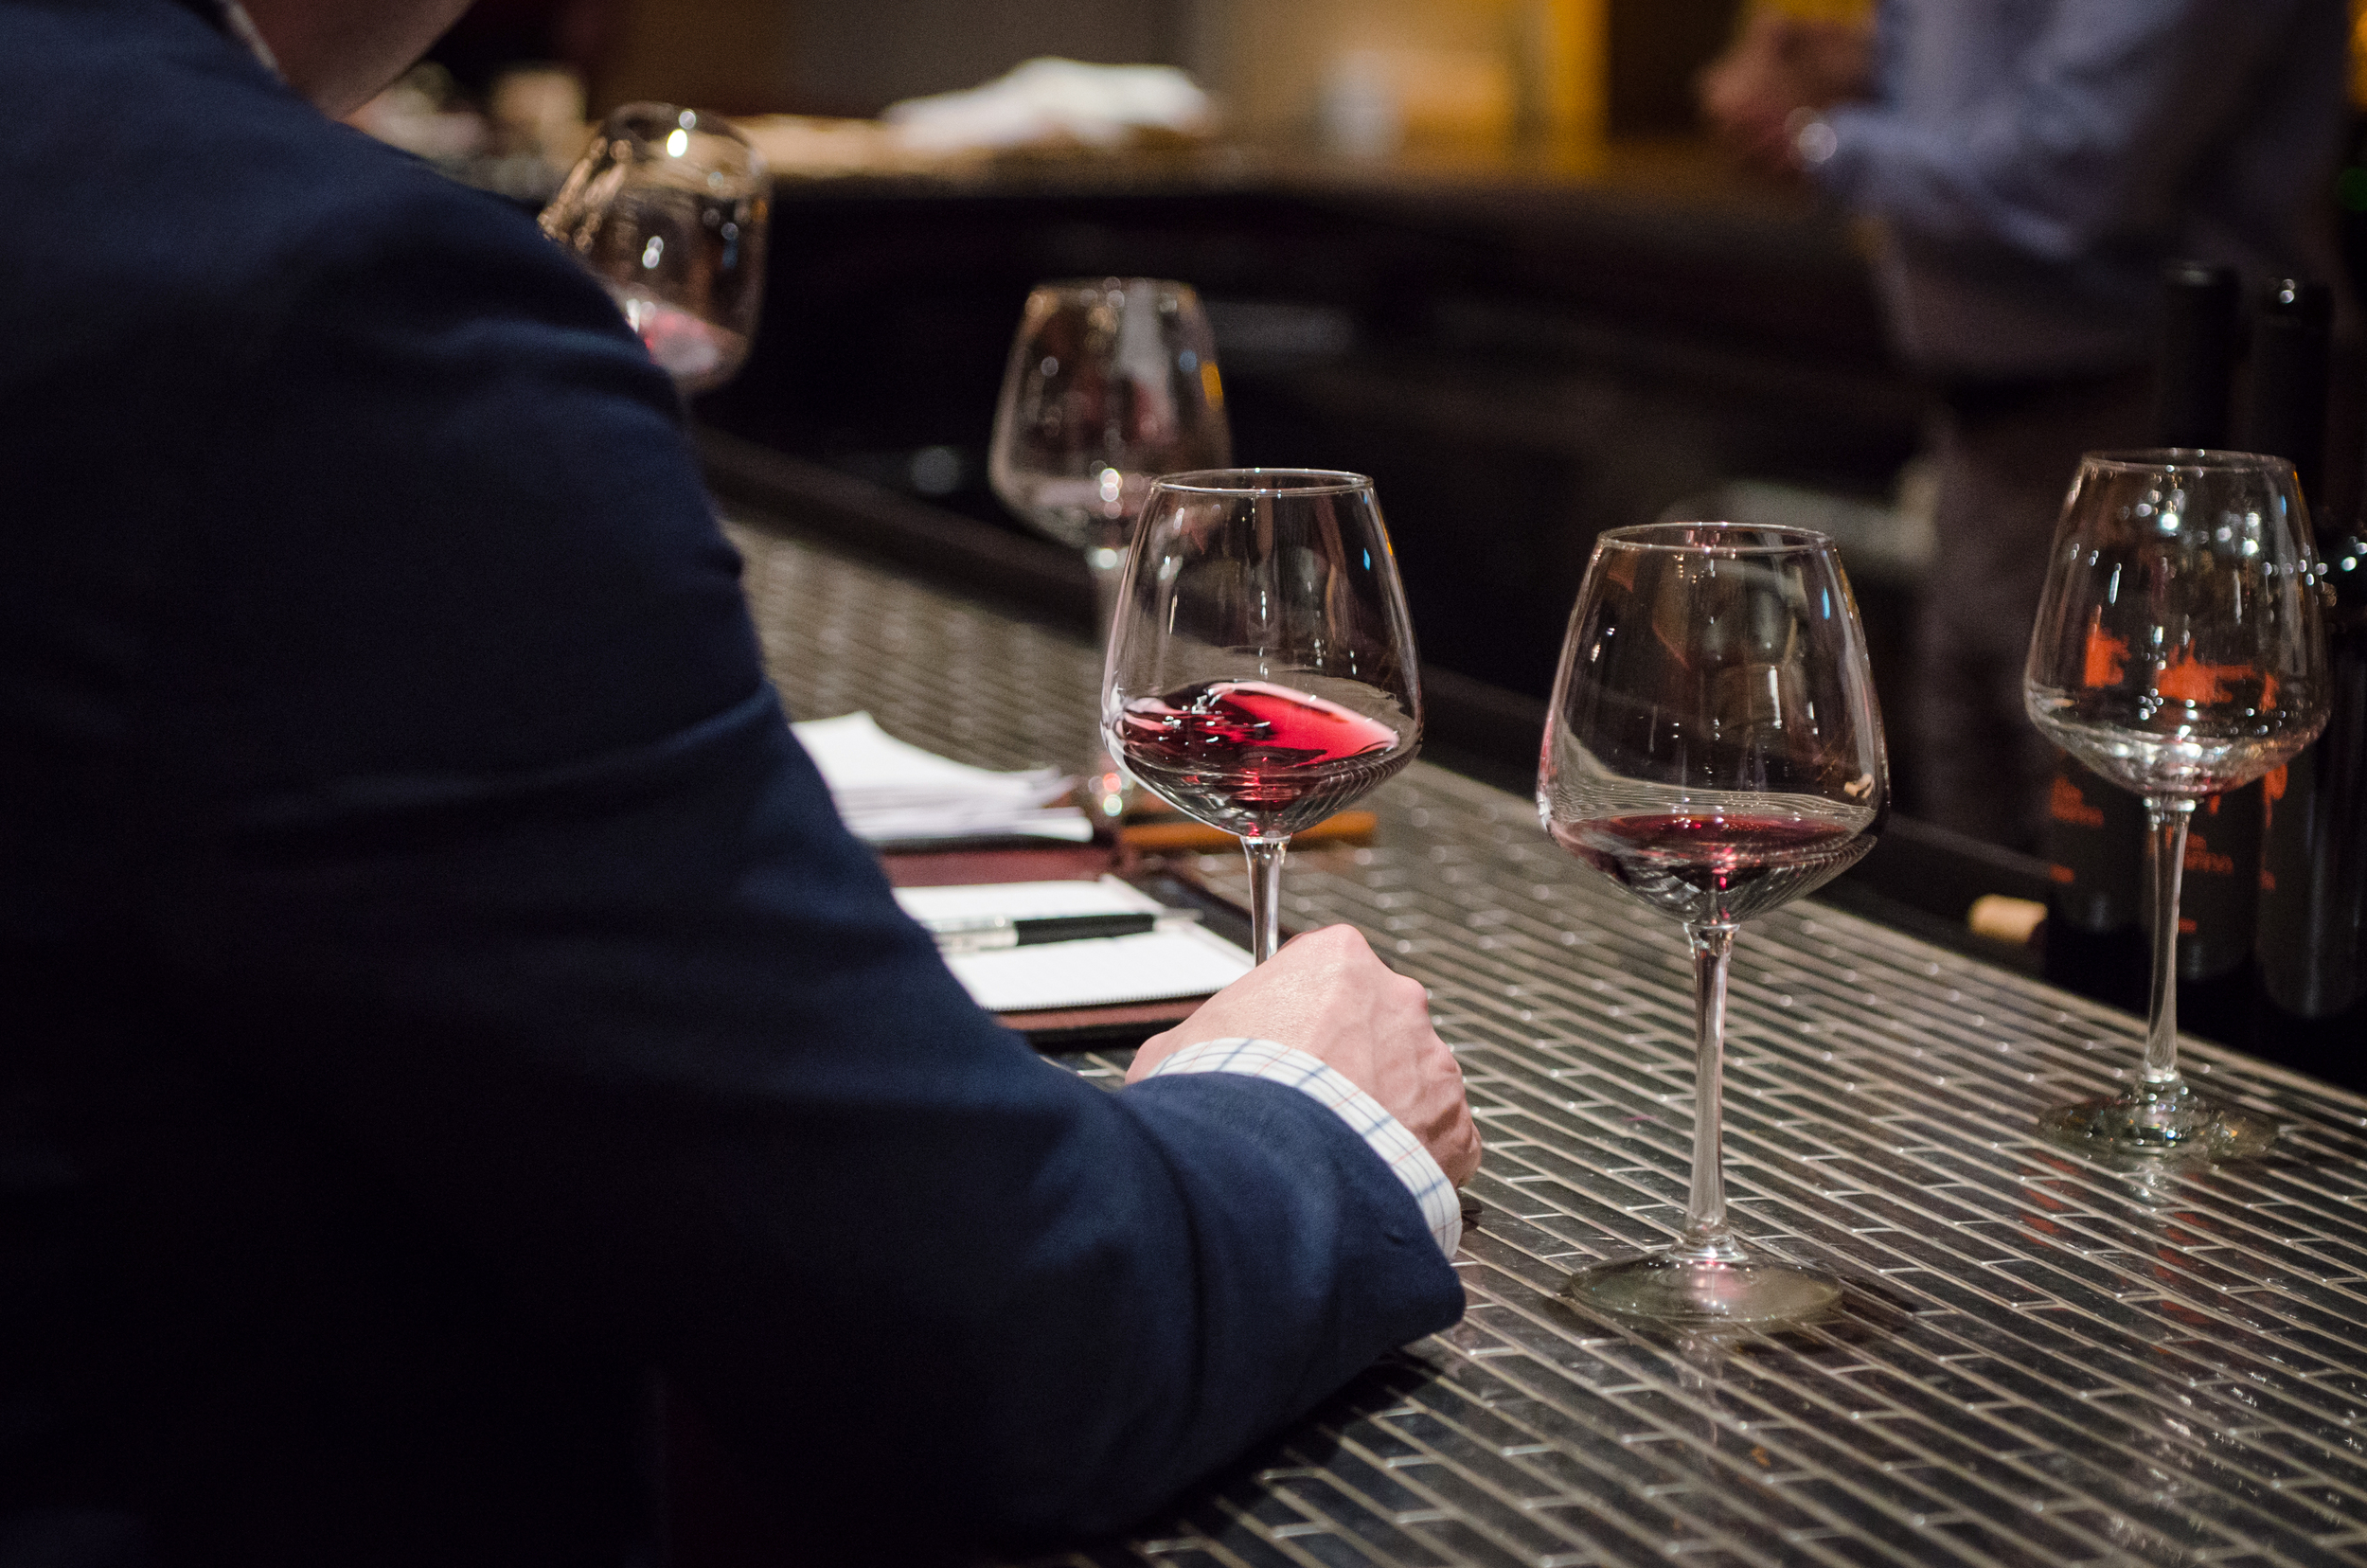 Master Sommeliers can tell the year, region, and type of wine just by tasting it